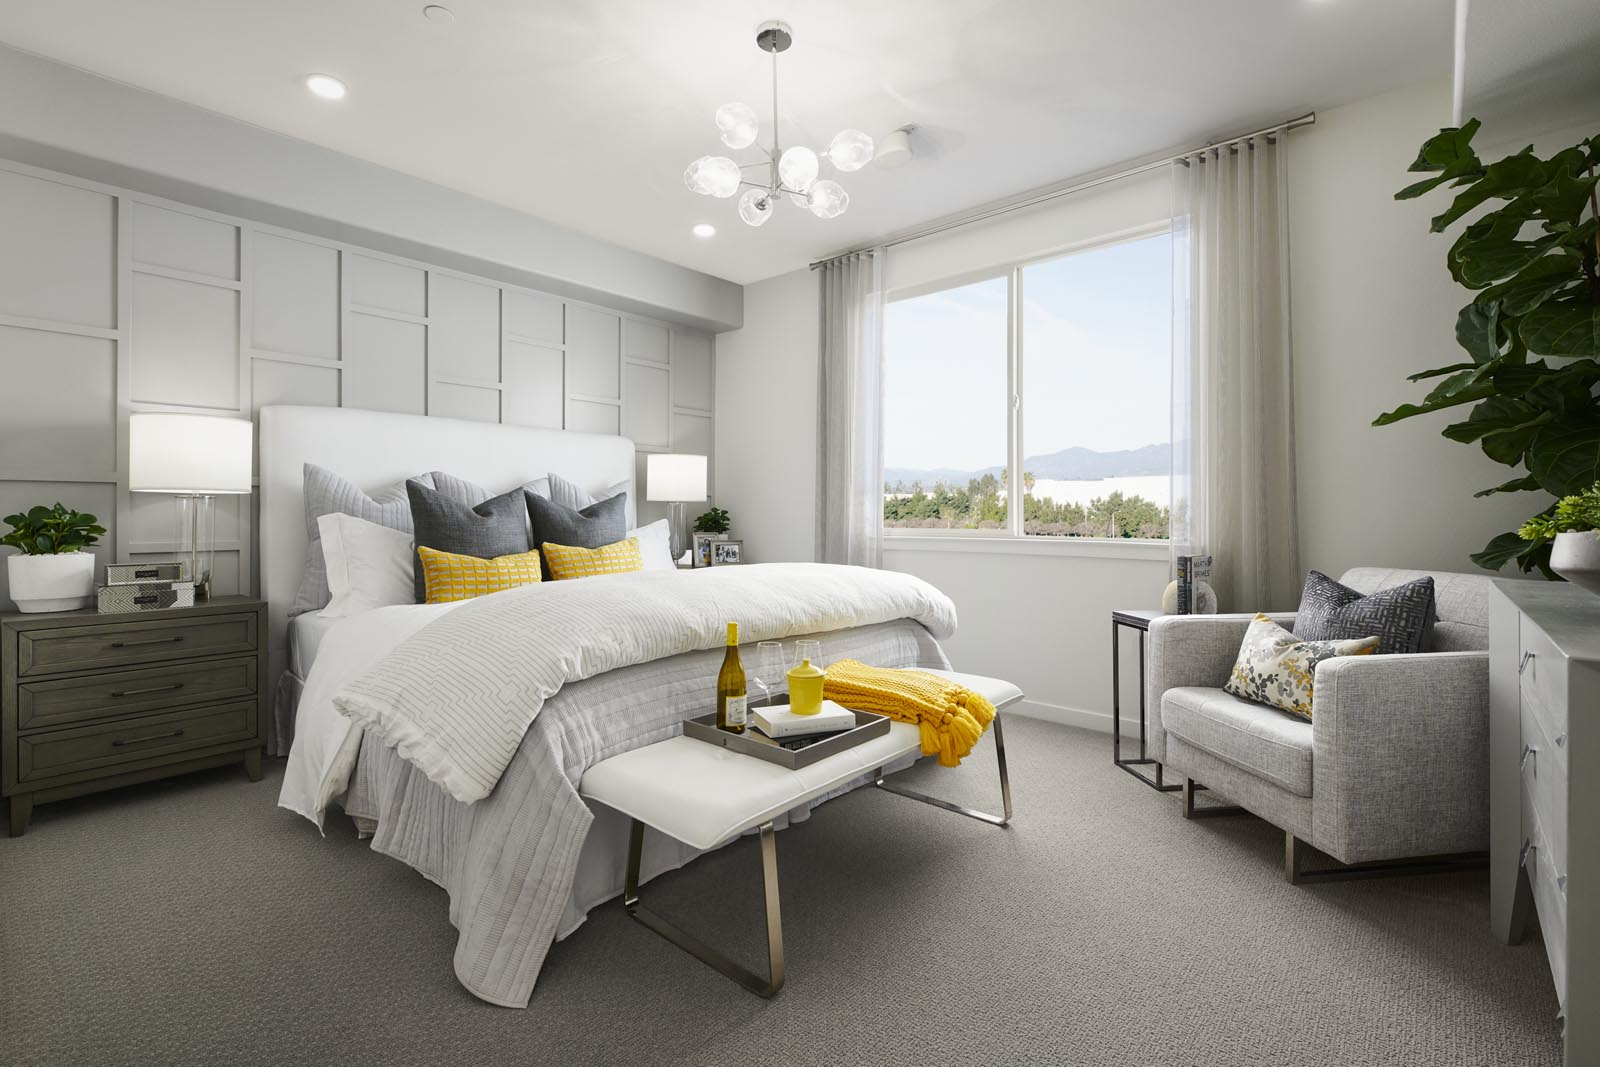 Master Bedroom | Residence 1 | Aspire | New Homes in Rancho Cucamonga, CA | Van Daele Homes